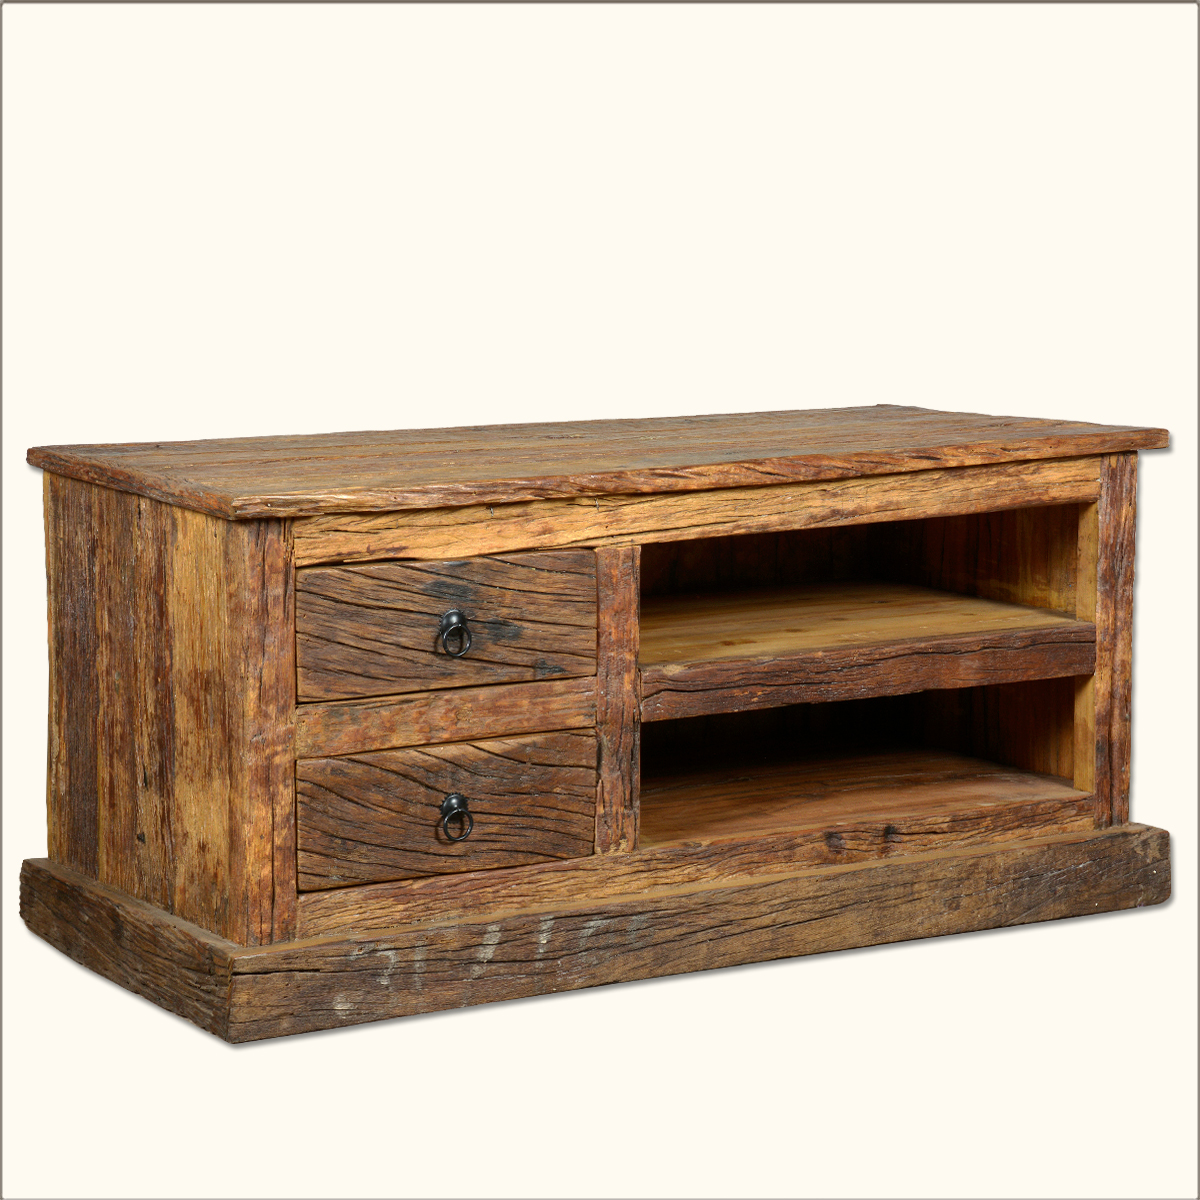 Reclaimed wood rustic railroad ties tv stand media console Rustic tv stands